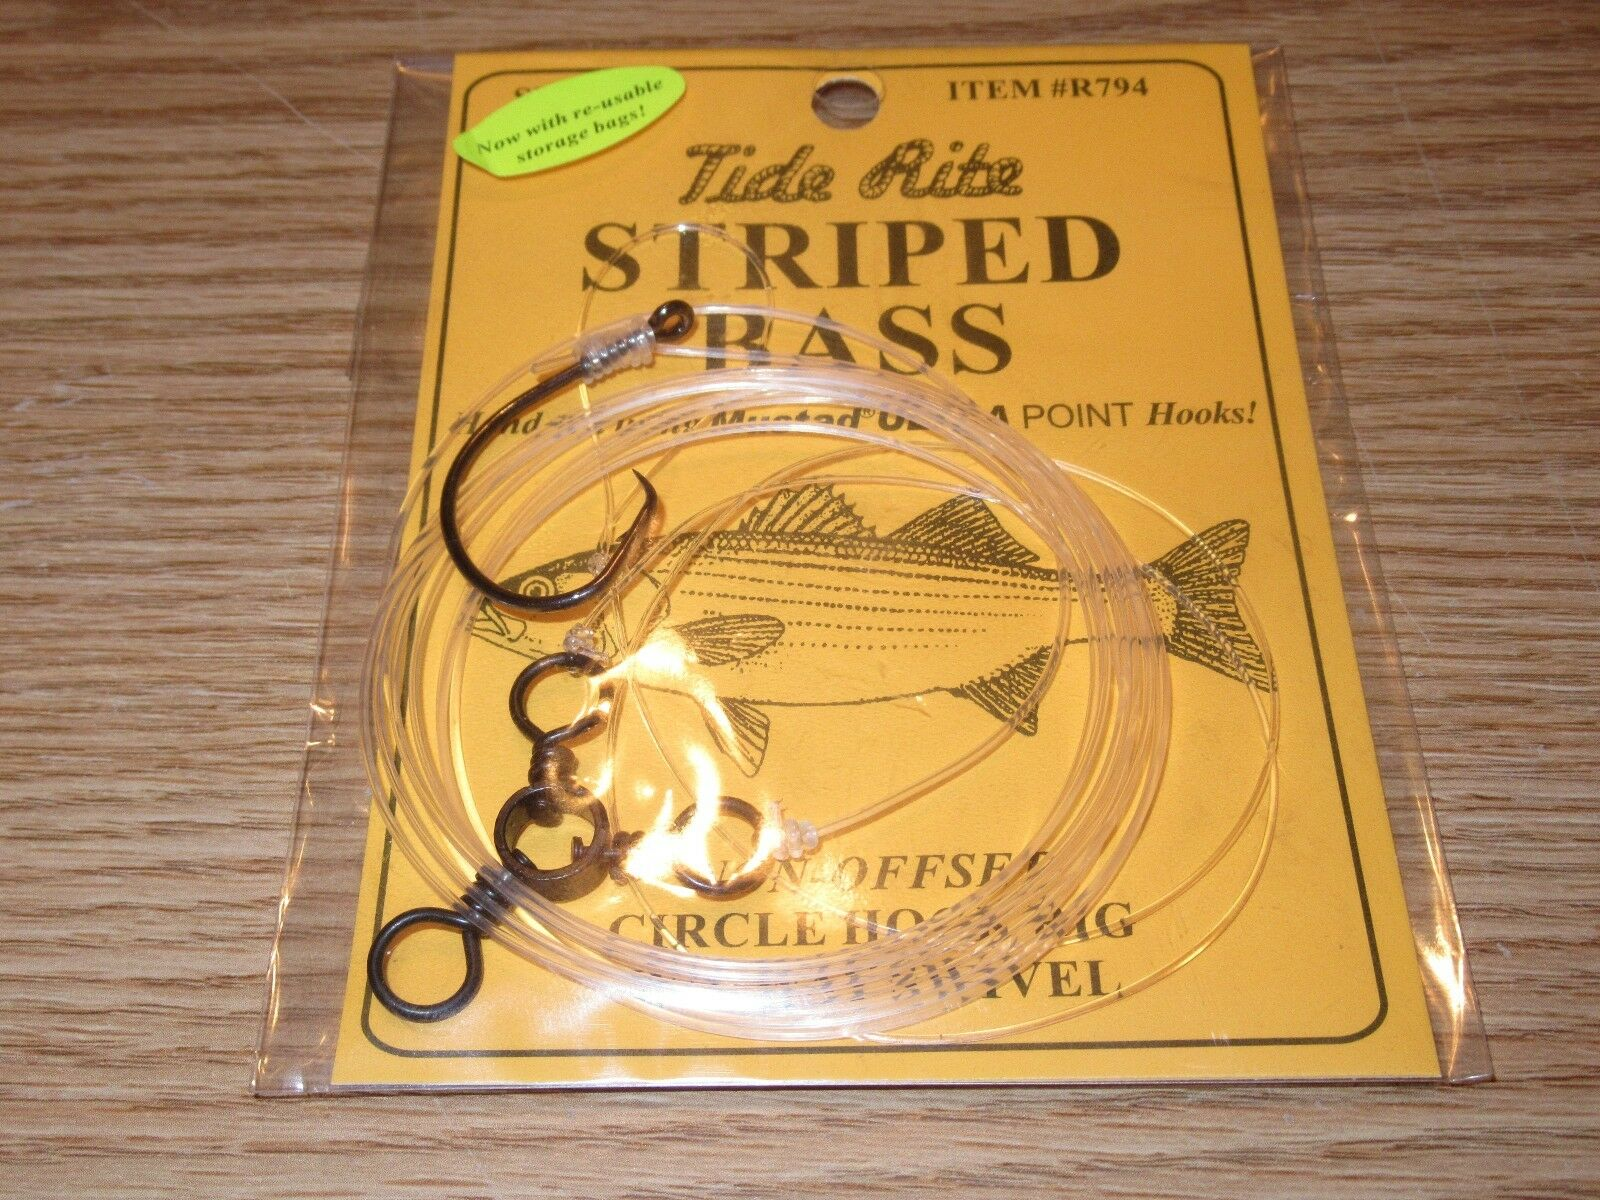 24 STRIPED BASS TIDE RITE R794 CIRCLE HOOK 3WAY RIGS SALTWATER FISH RIG MUSTAD